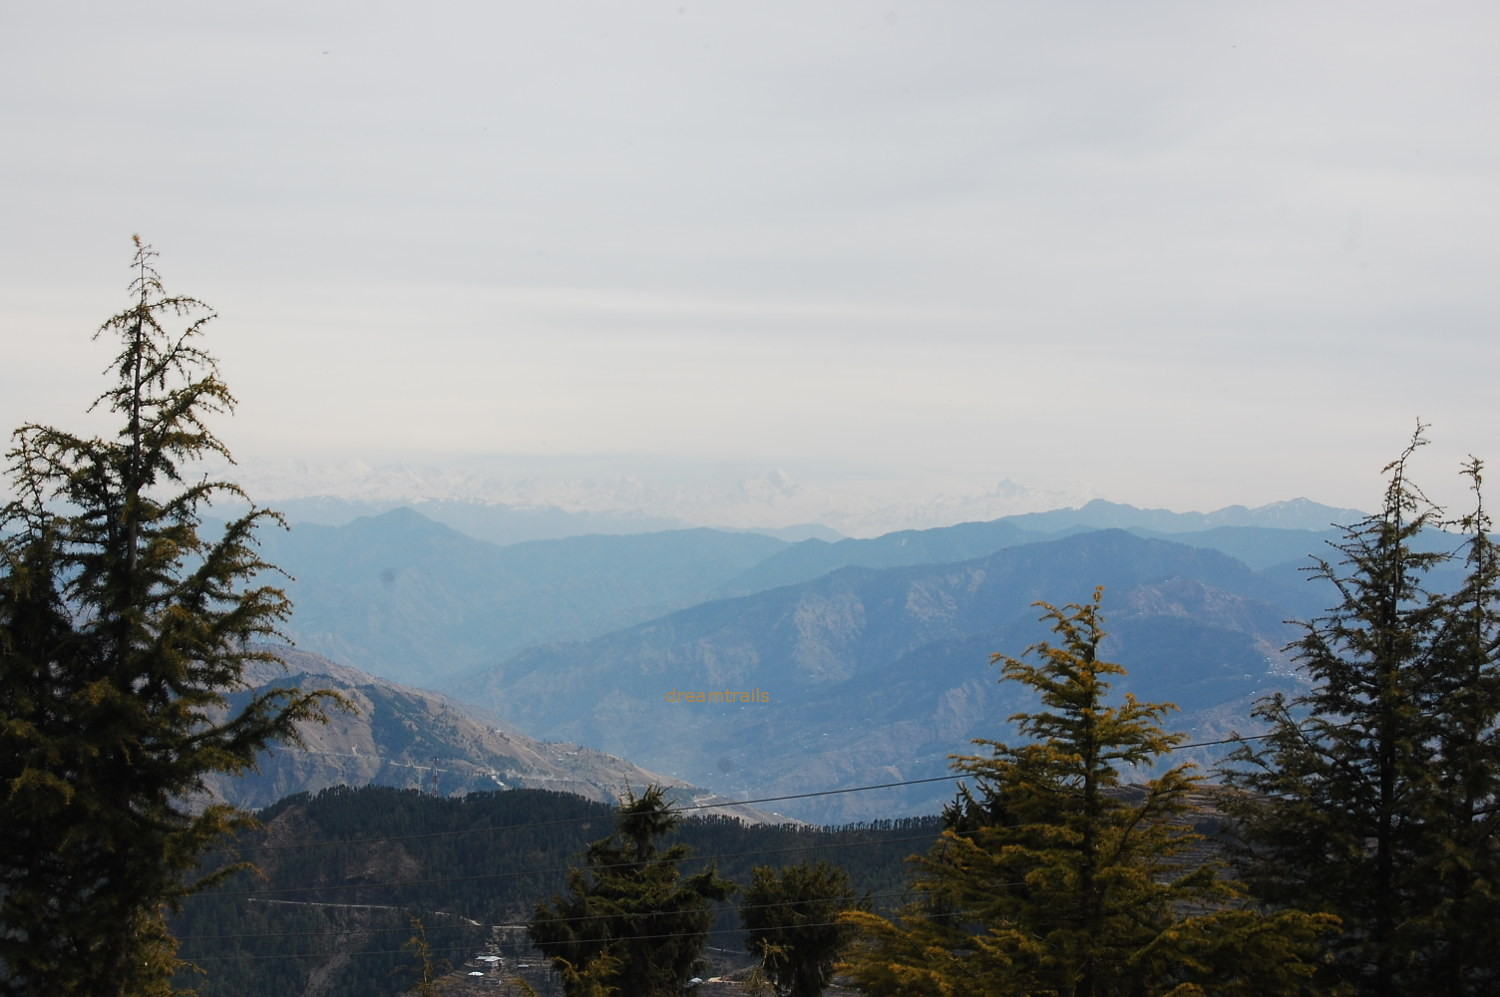 Awesome views of Himalayas from Kufri, Shimla